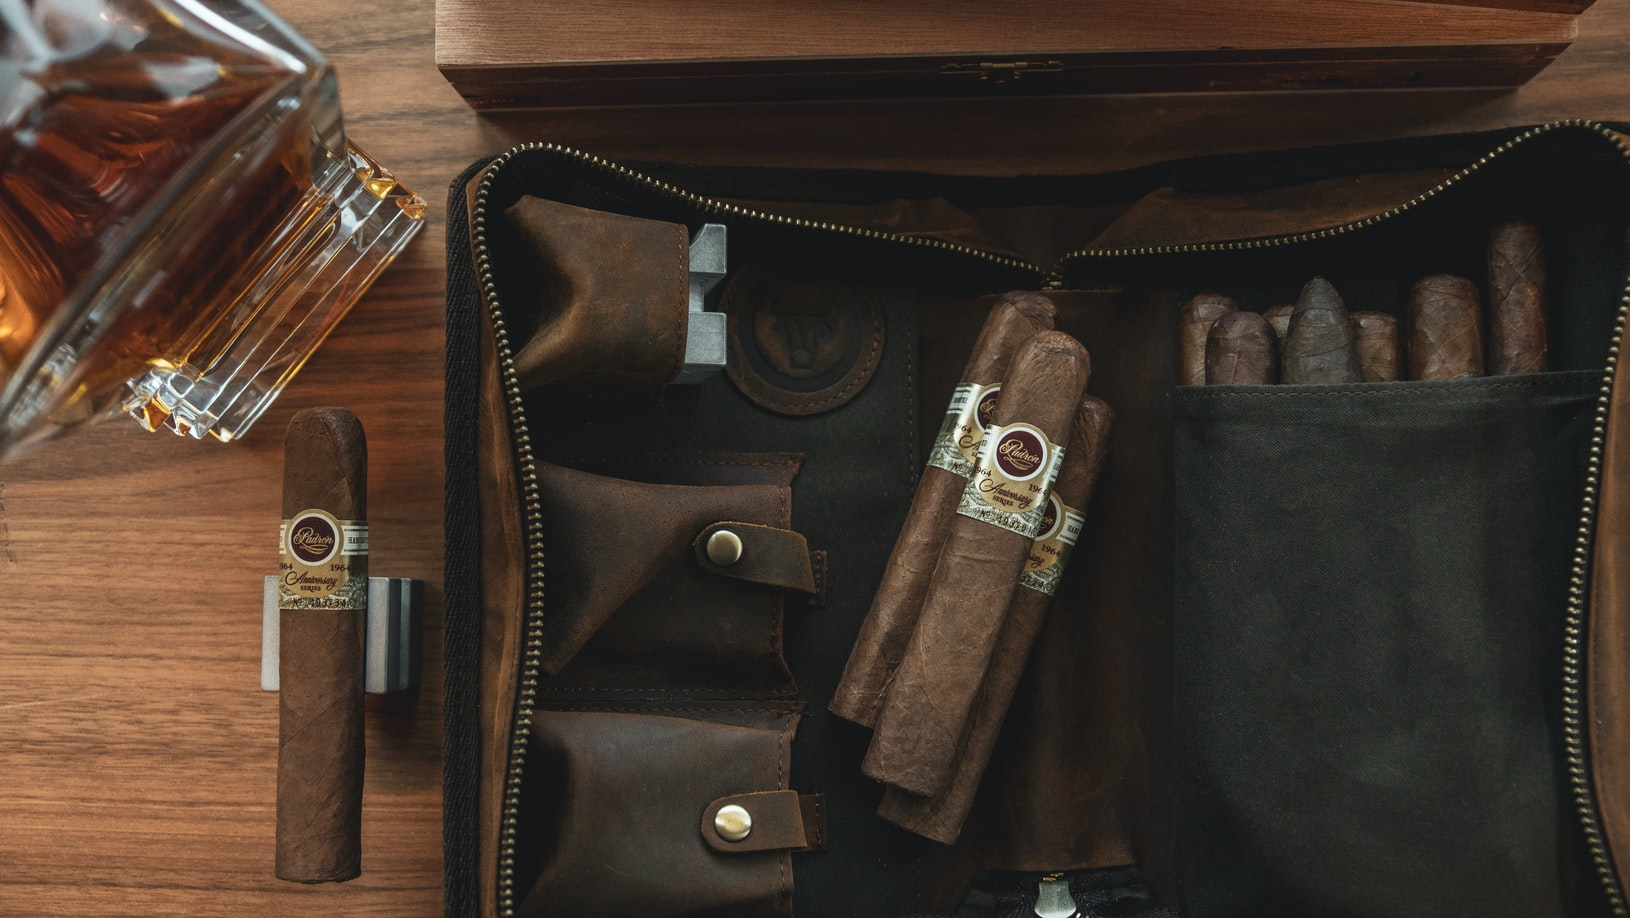 Cigars in a leather case